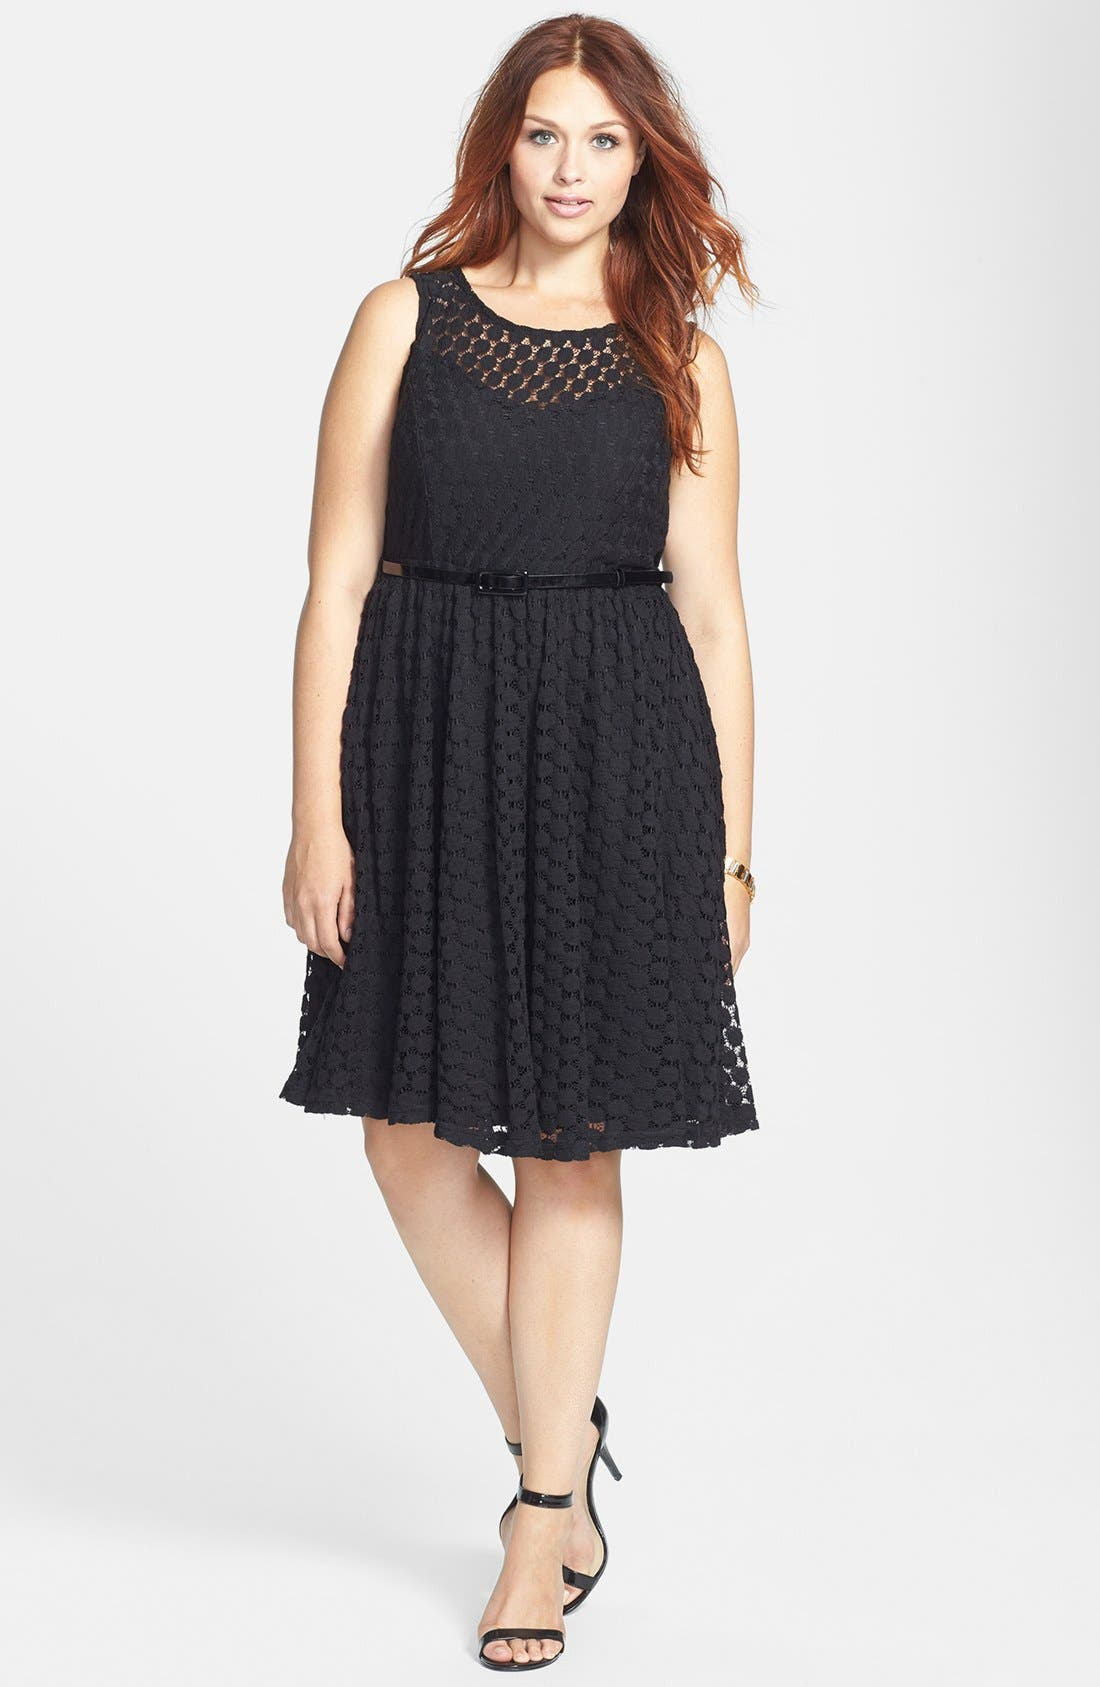 Alternate Image 1 Selected - City Chic Lace Swing Dress (Plus Size)